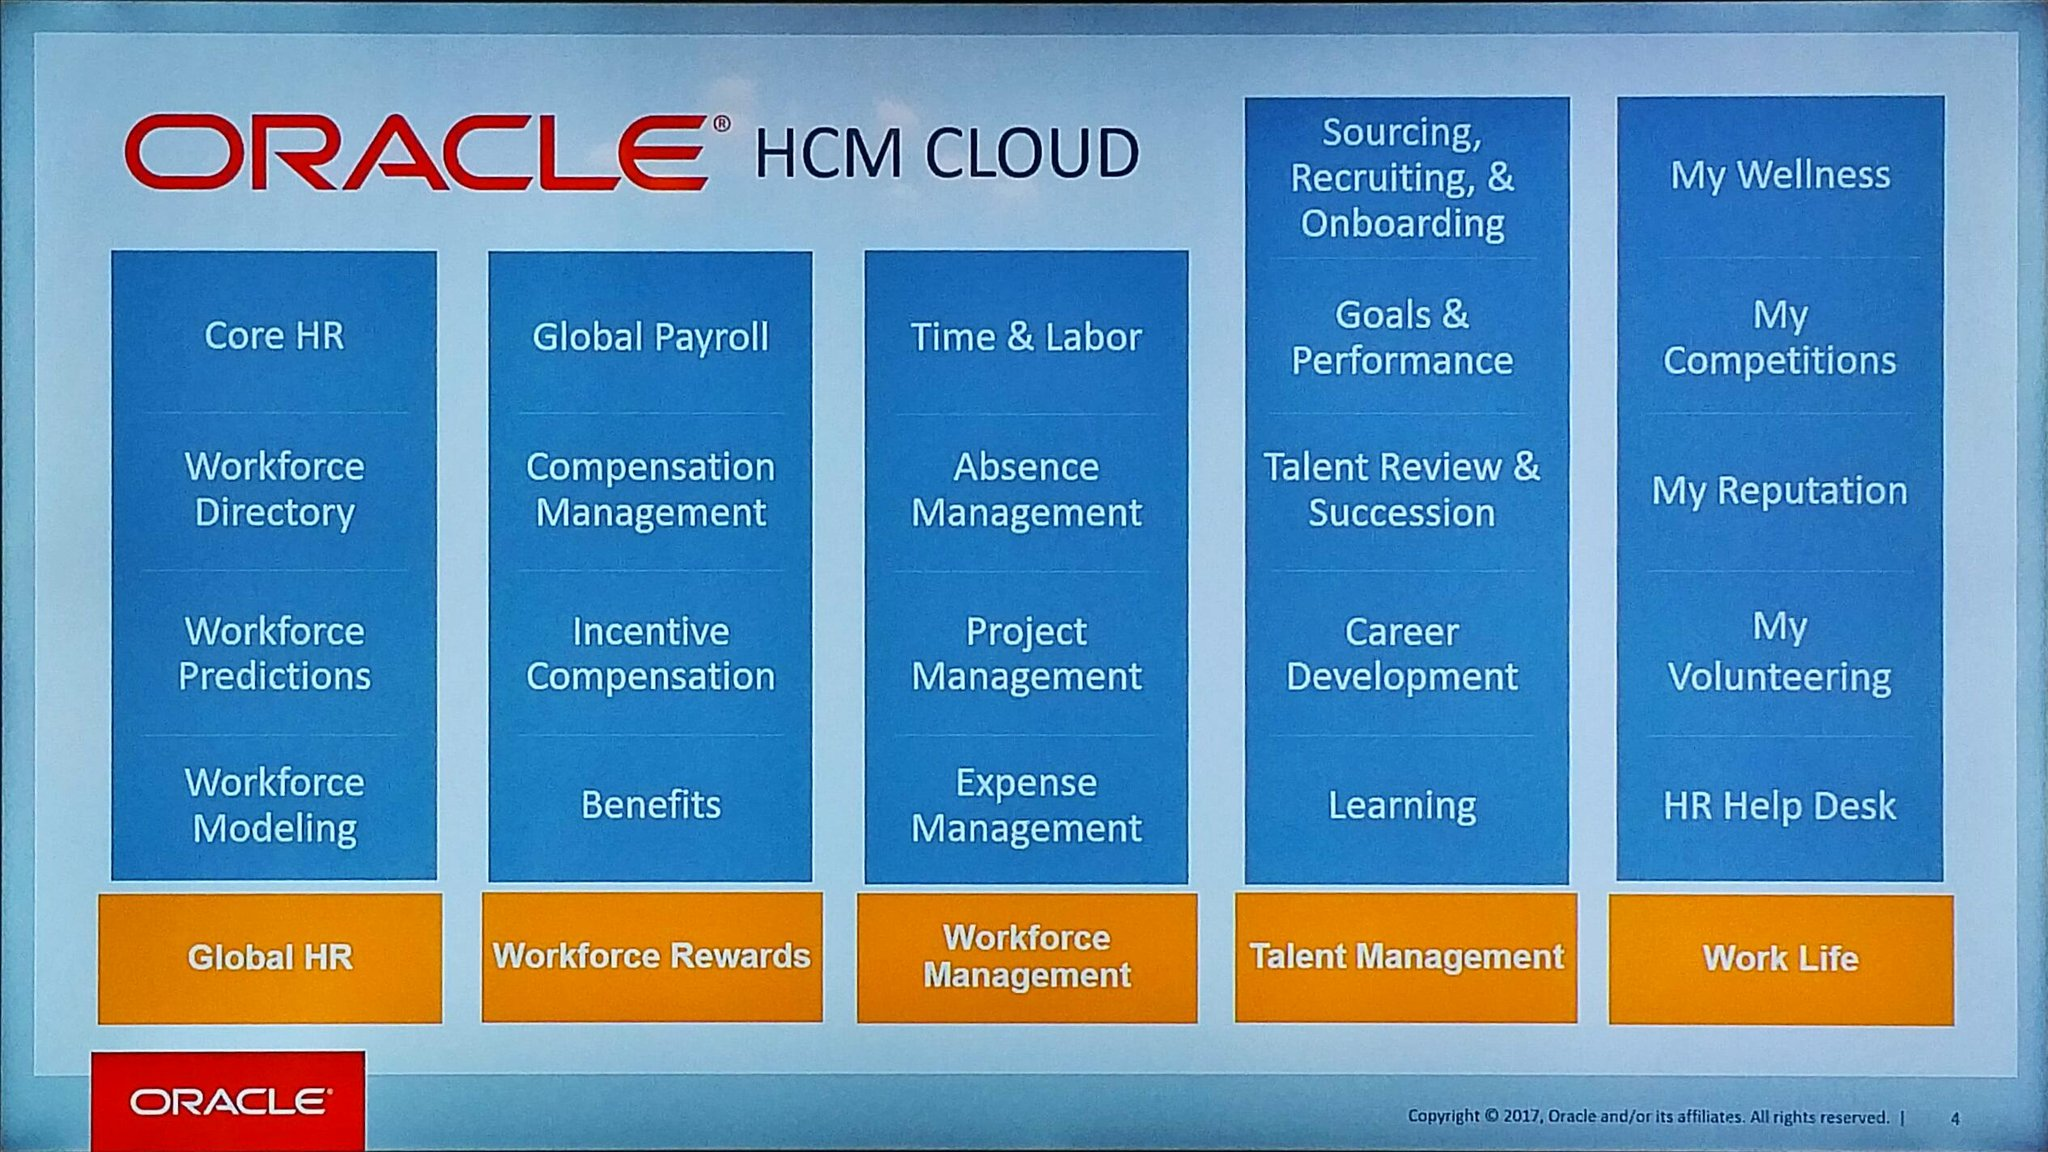 All of @OracleHCM built on one single platform, schema, code base says @chrismleone #OracleHCM https://t.co/1gcq12MSSd